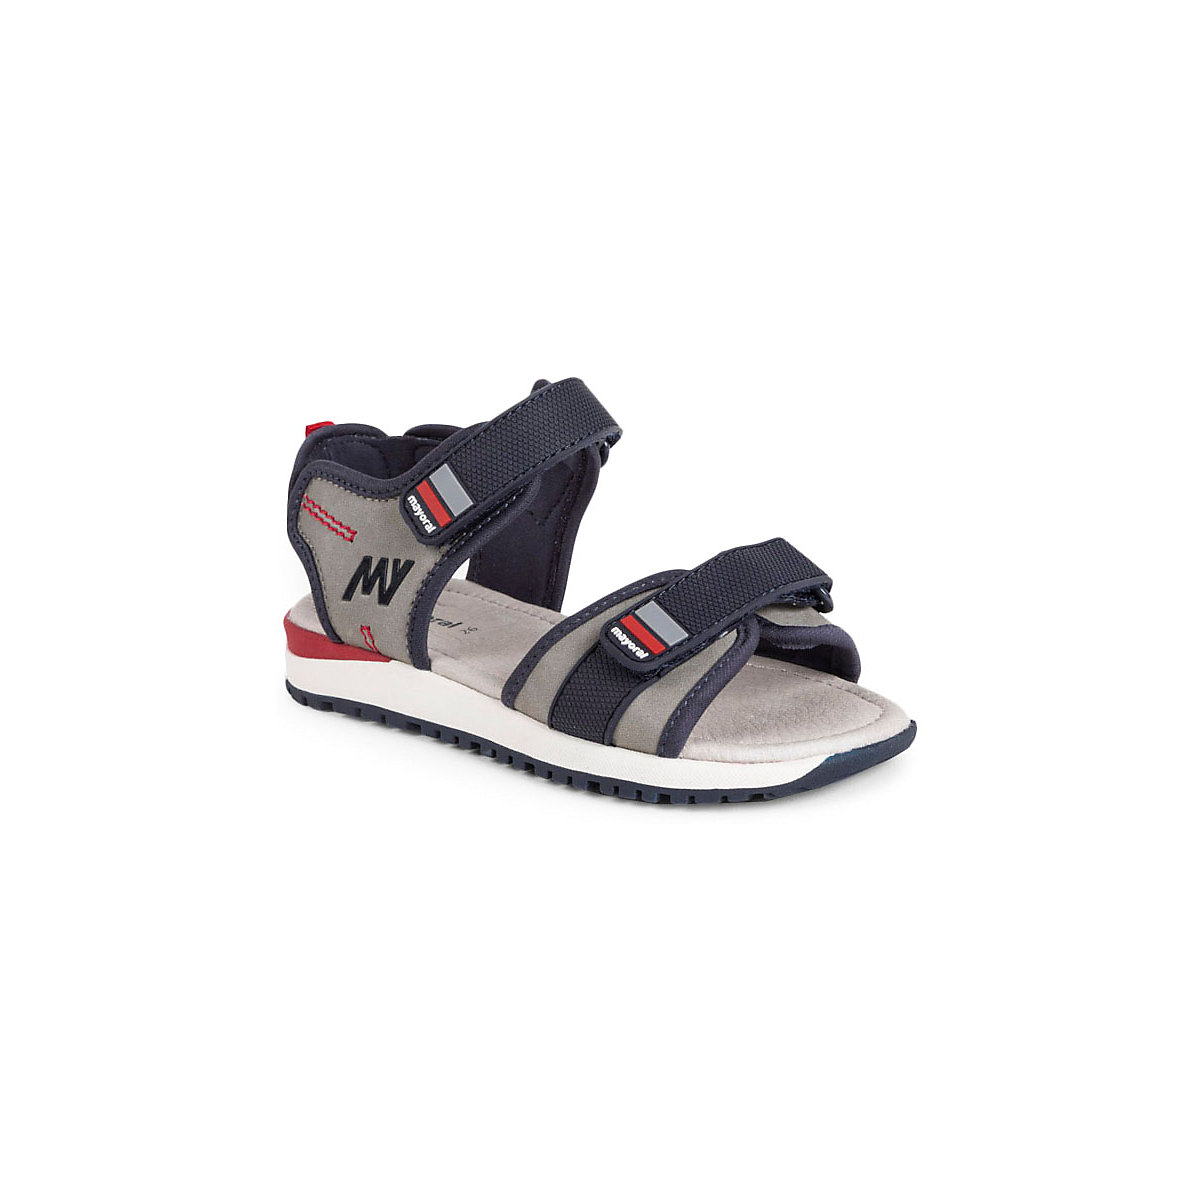 MAYORAL Sandals 10642928 Children's Shoes Comfortable And Light Girls And Boys